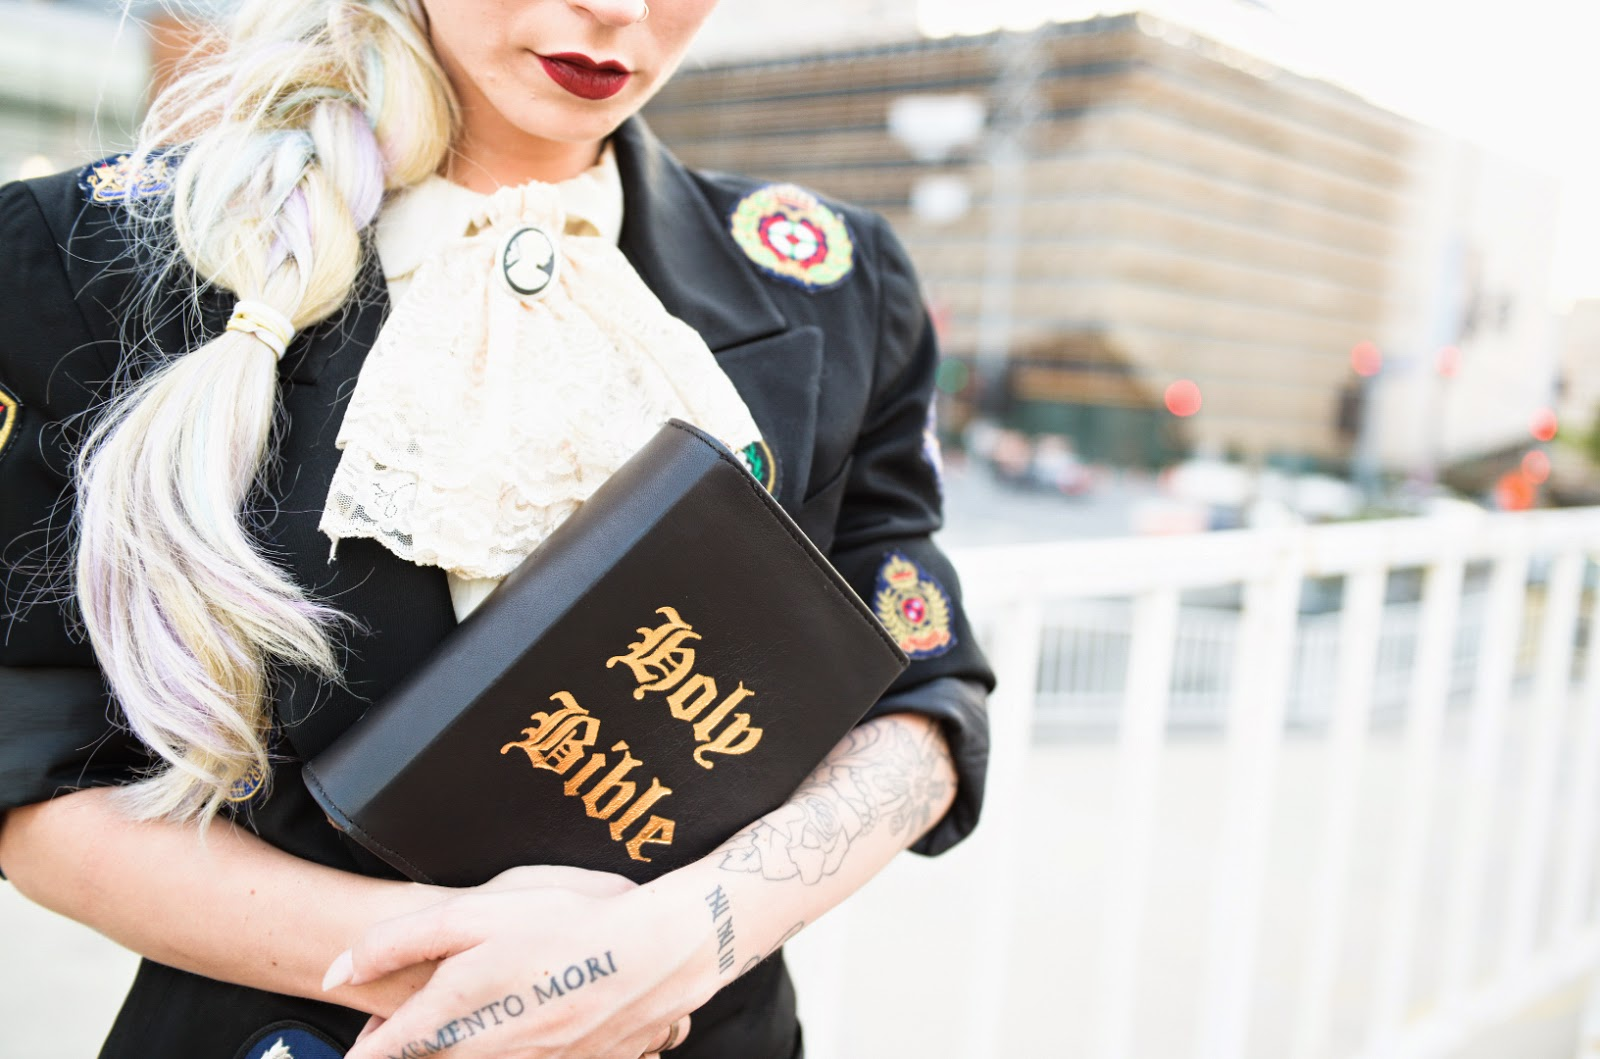 http://skinny-bags.com/?product=clutch-holy-bible-black-leather